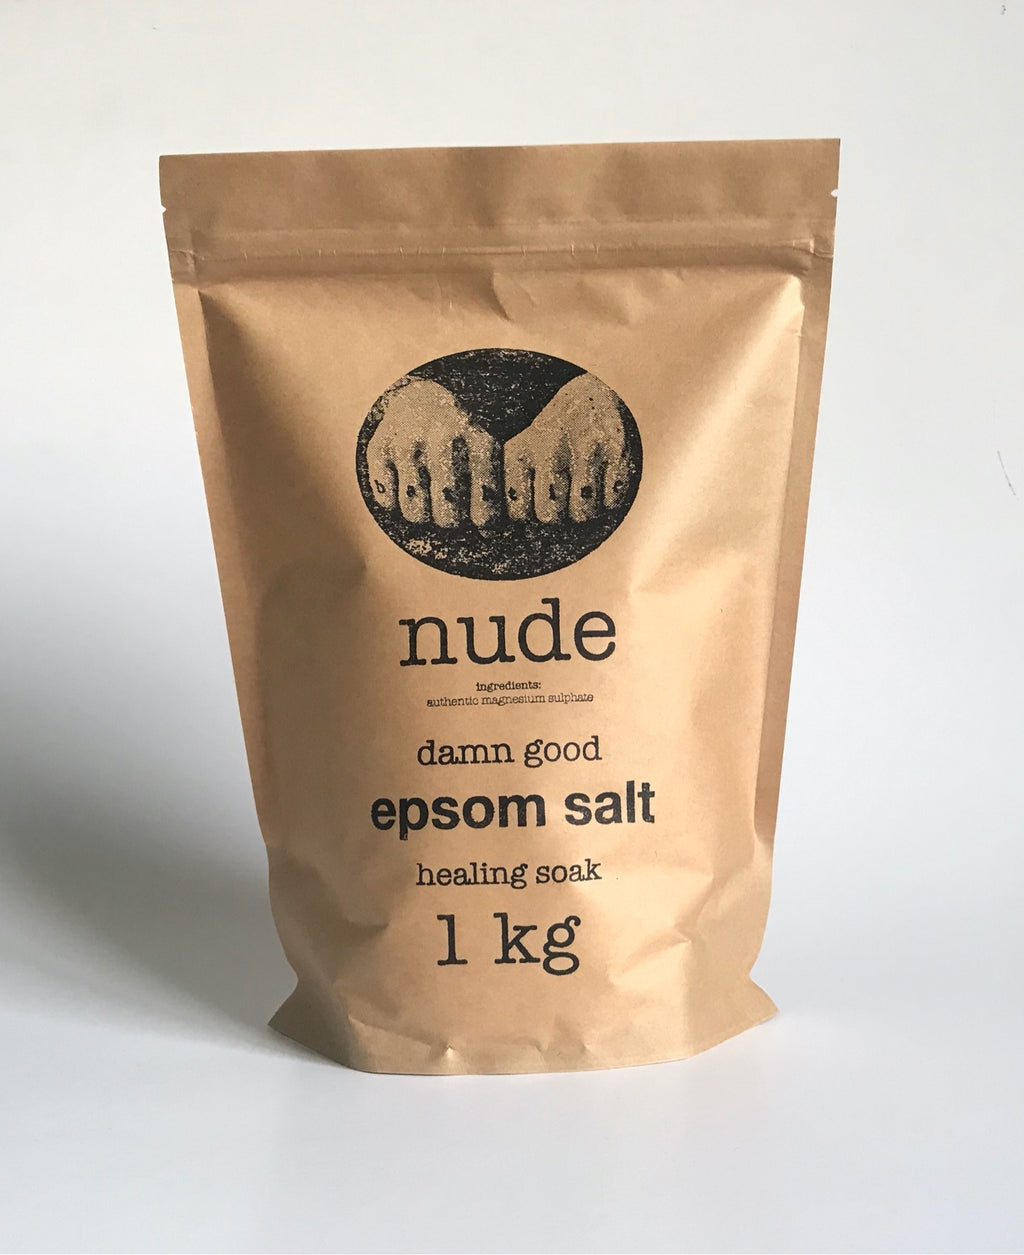 Nude - Bath time - Bath salt